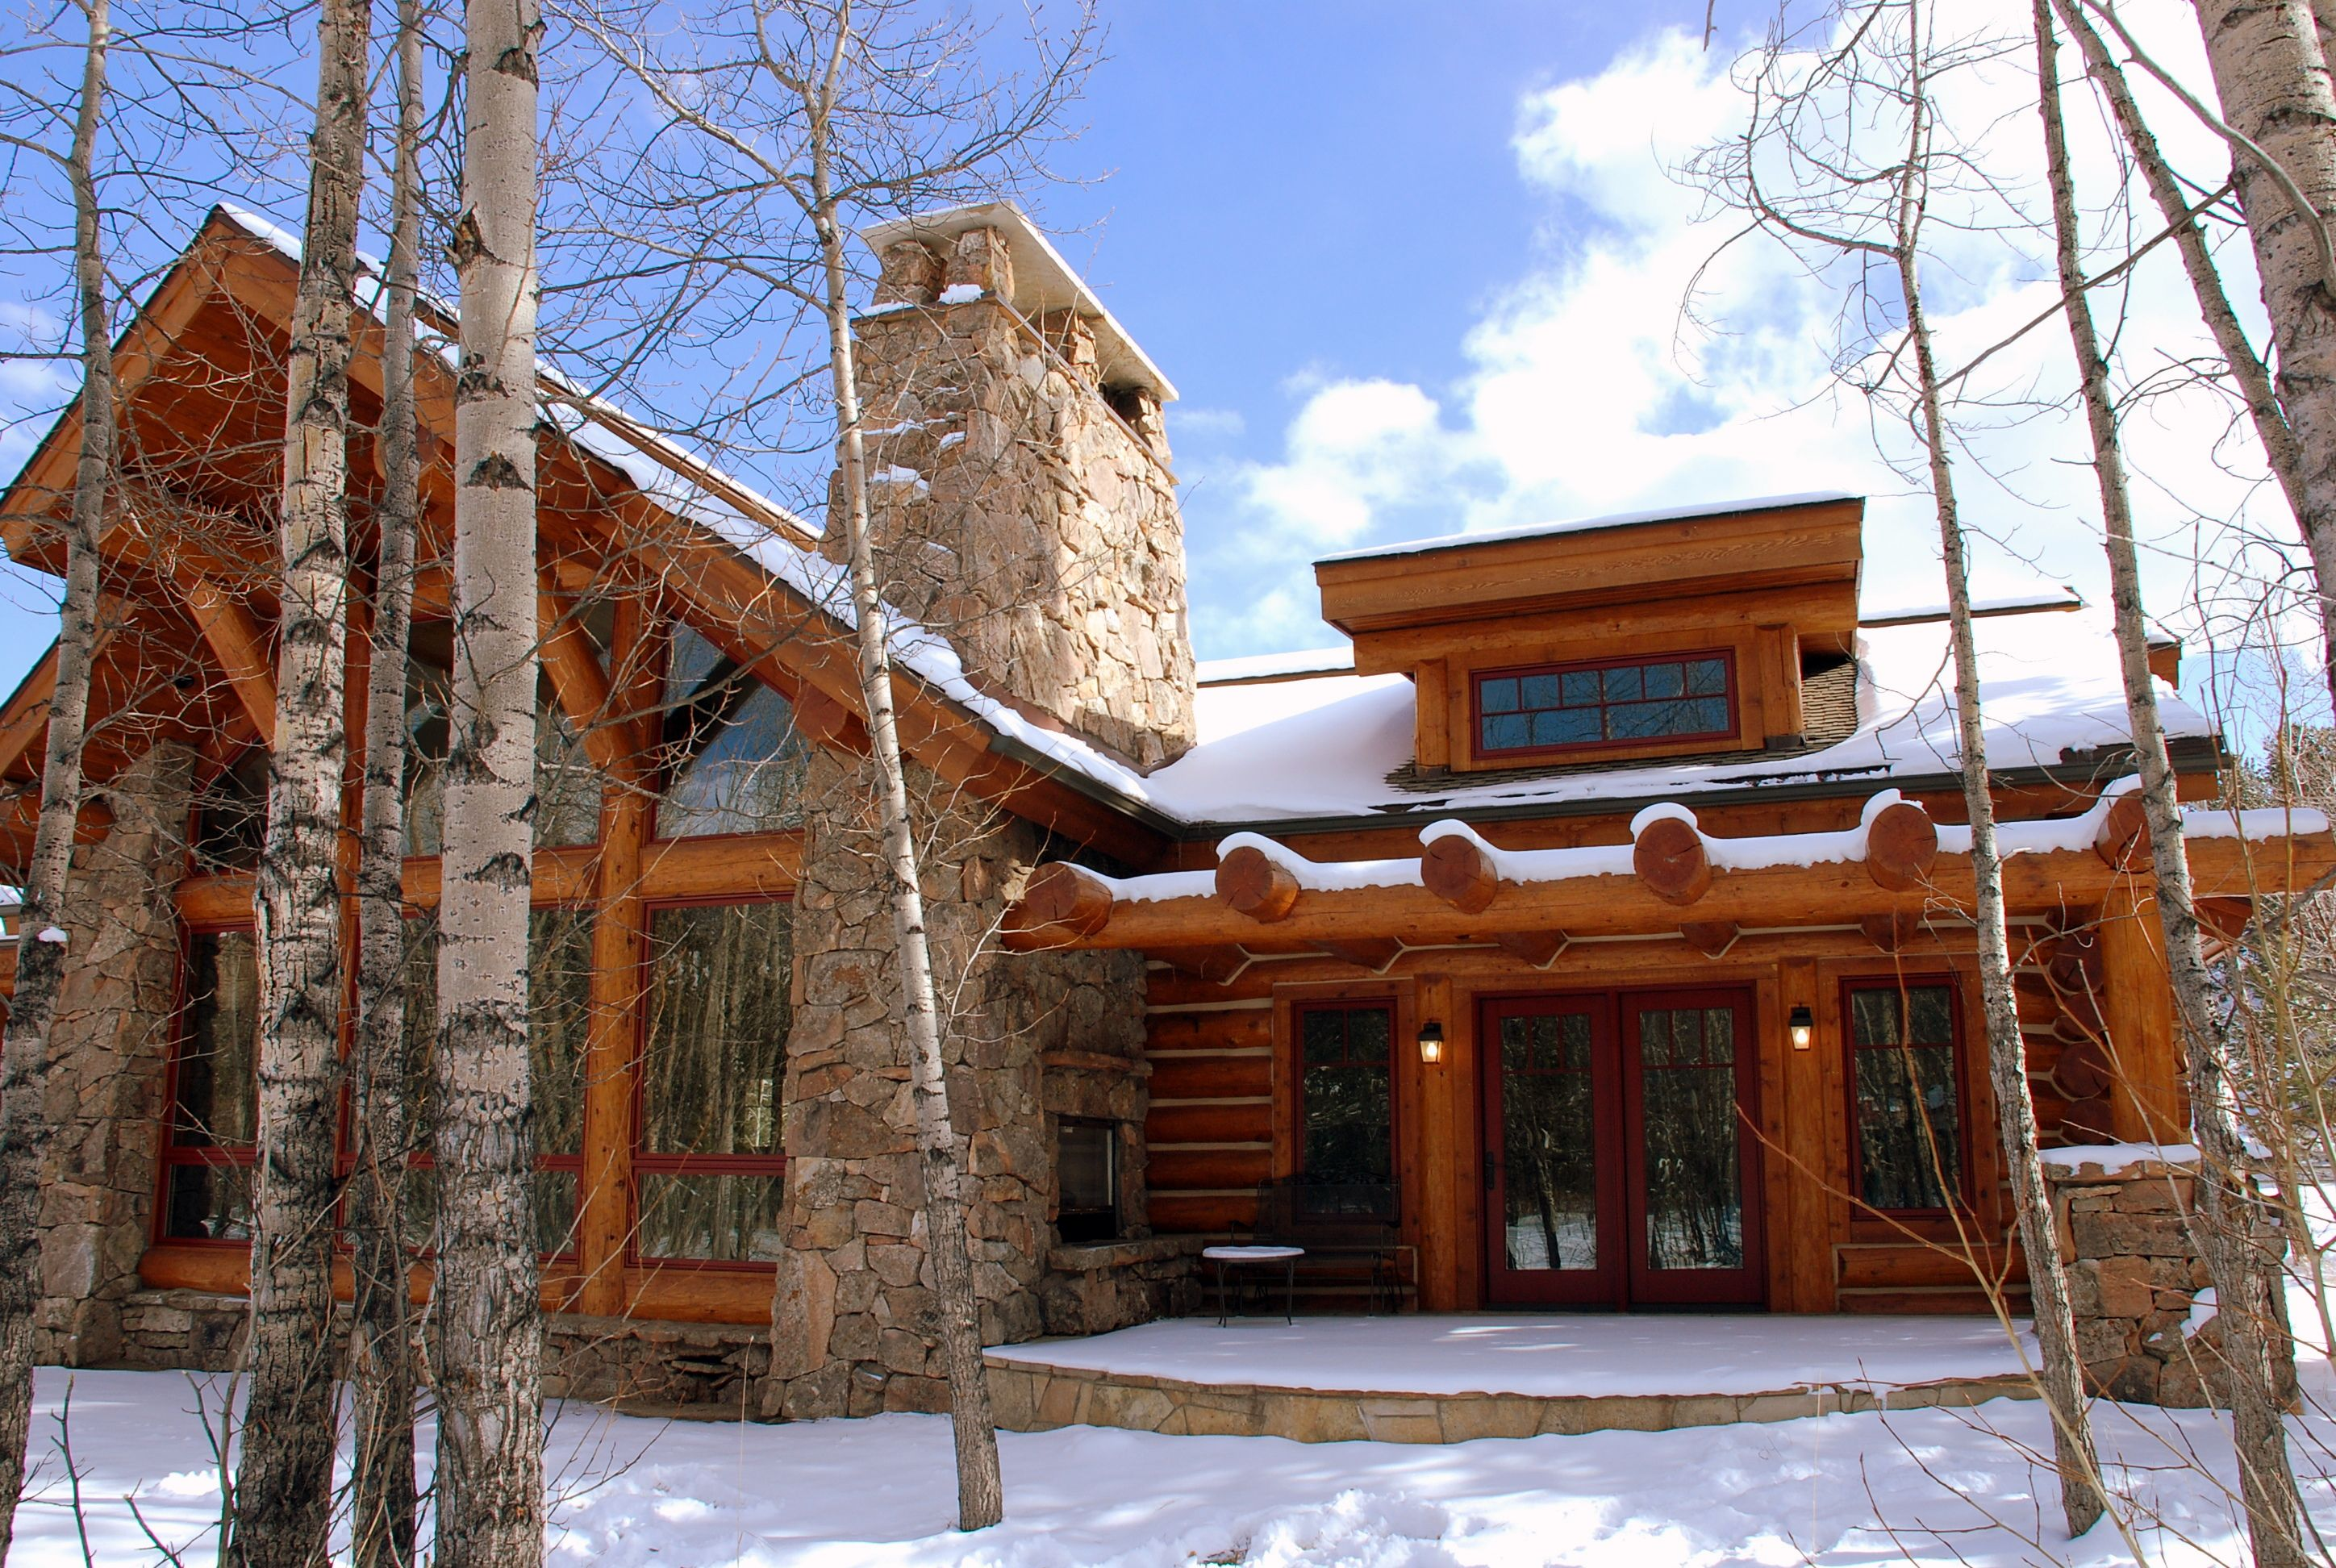 cabins sale colorado tag for real northridge homes south estate northridgeeagleridge dr eagleridge pueblo img co